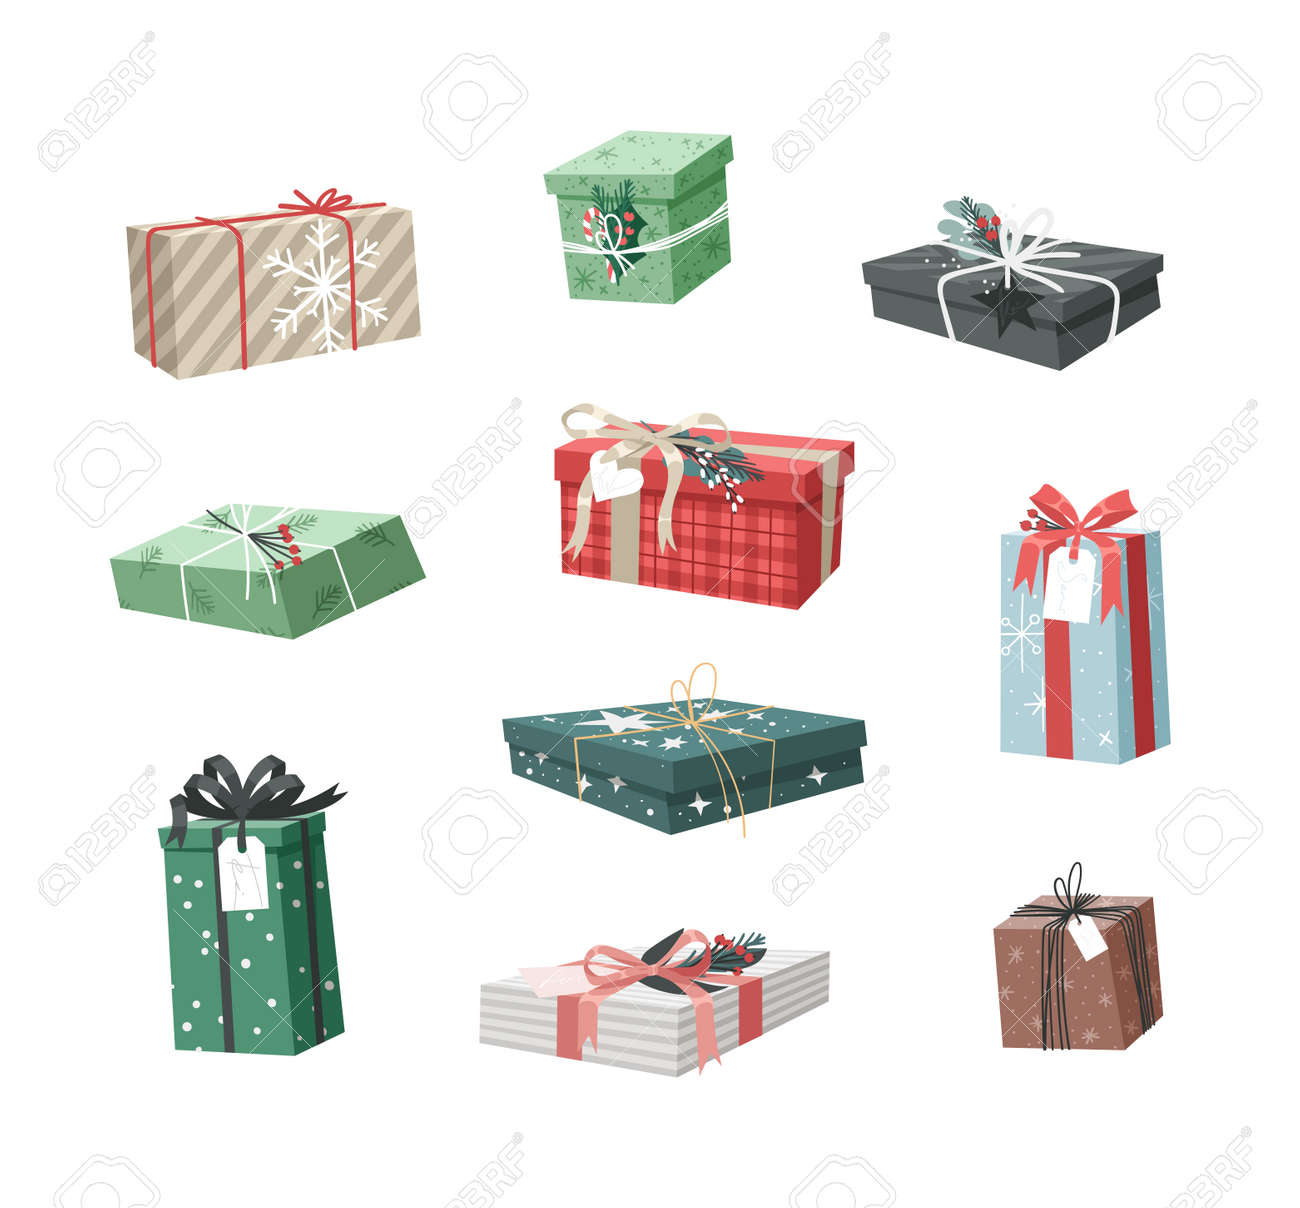 Cartoon Illustration Christmas Gift Box isolated. Creative Flat Style Art Work Collection. Actual vector drawing of Holiday Things Packing. Cozy Winter Decoration set - 161767017